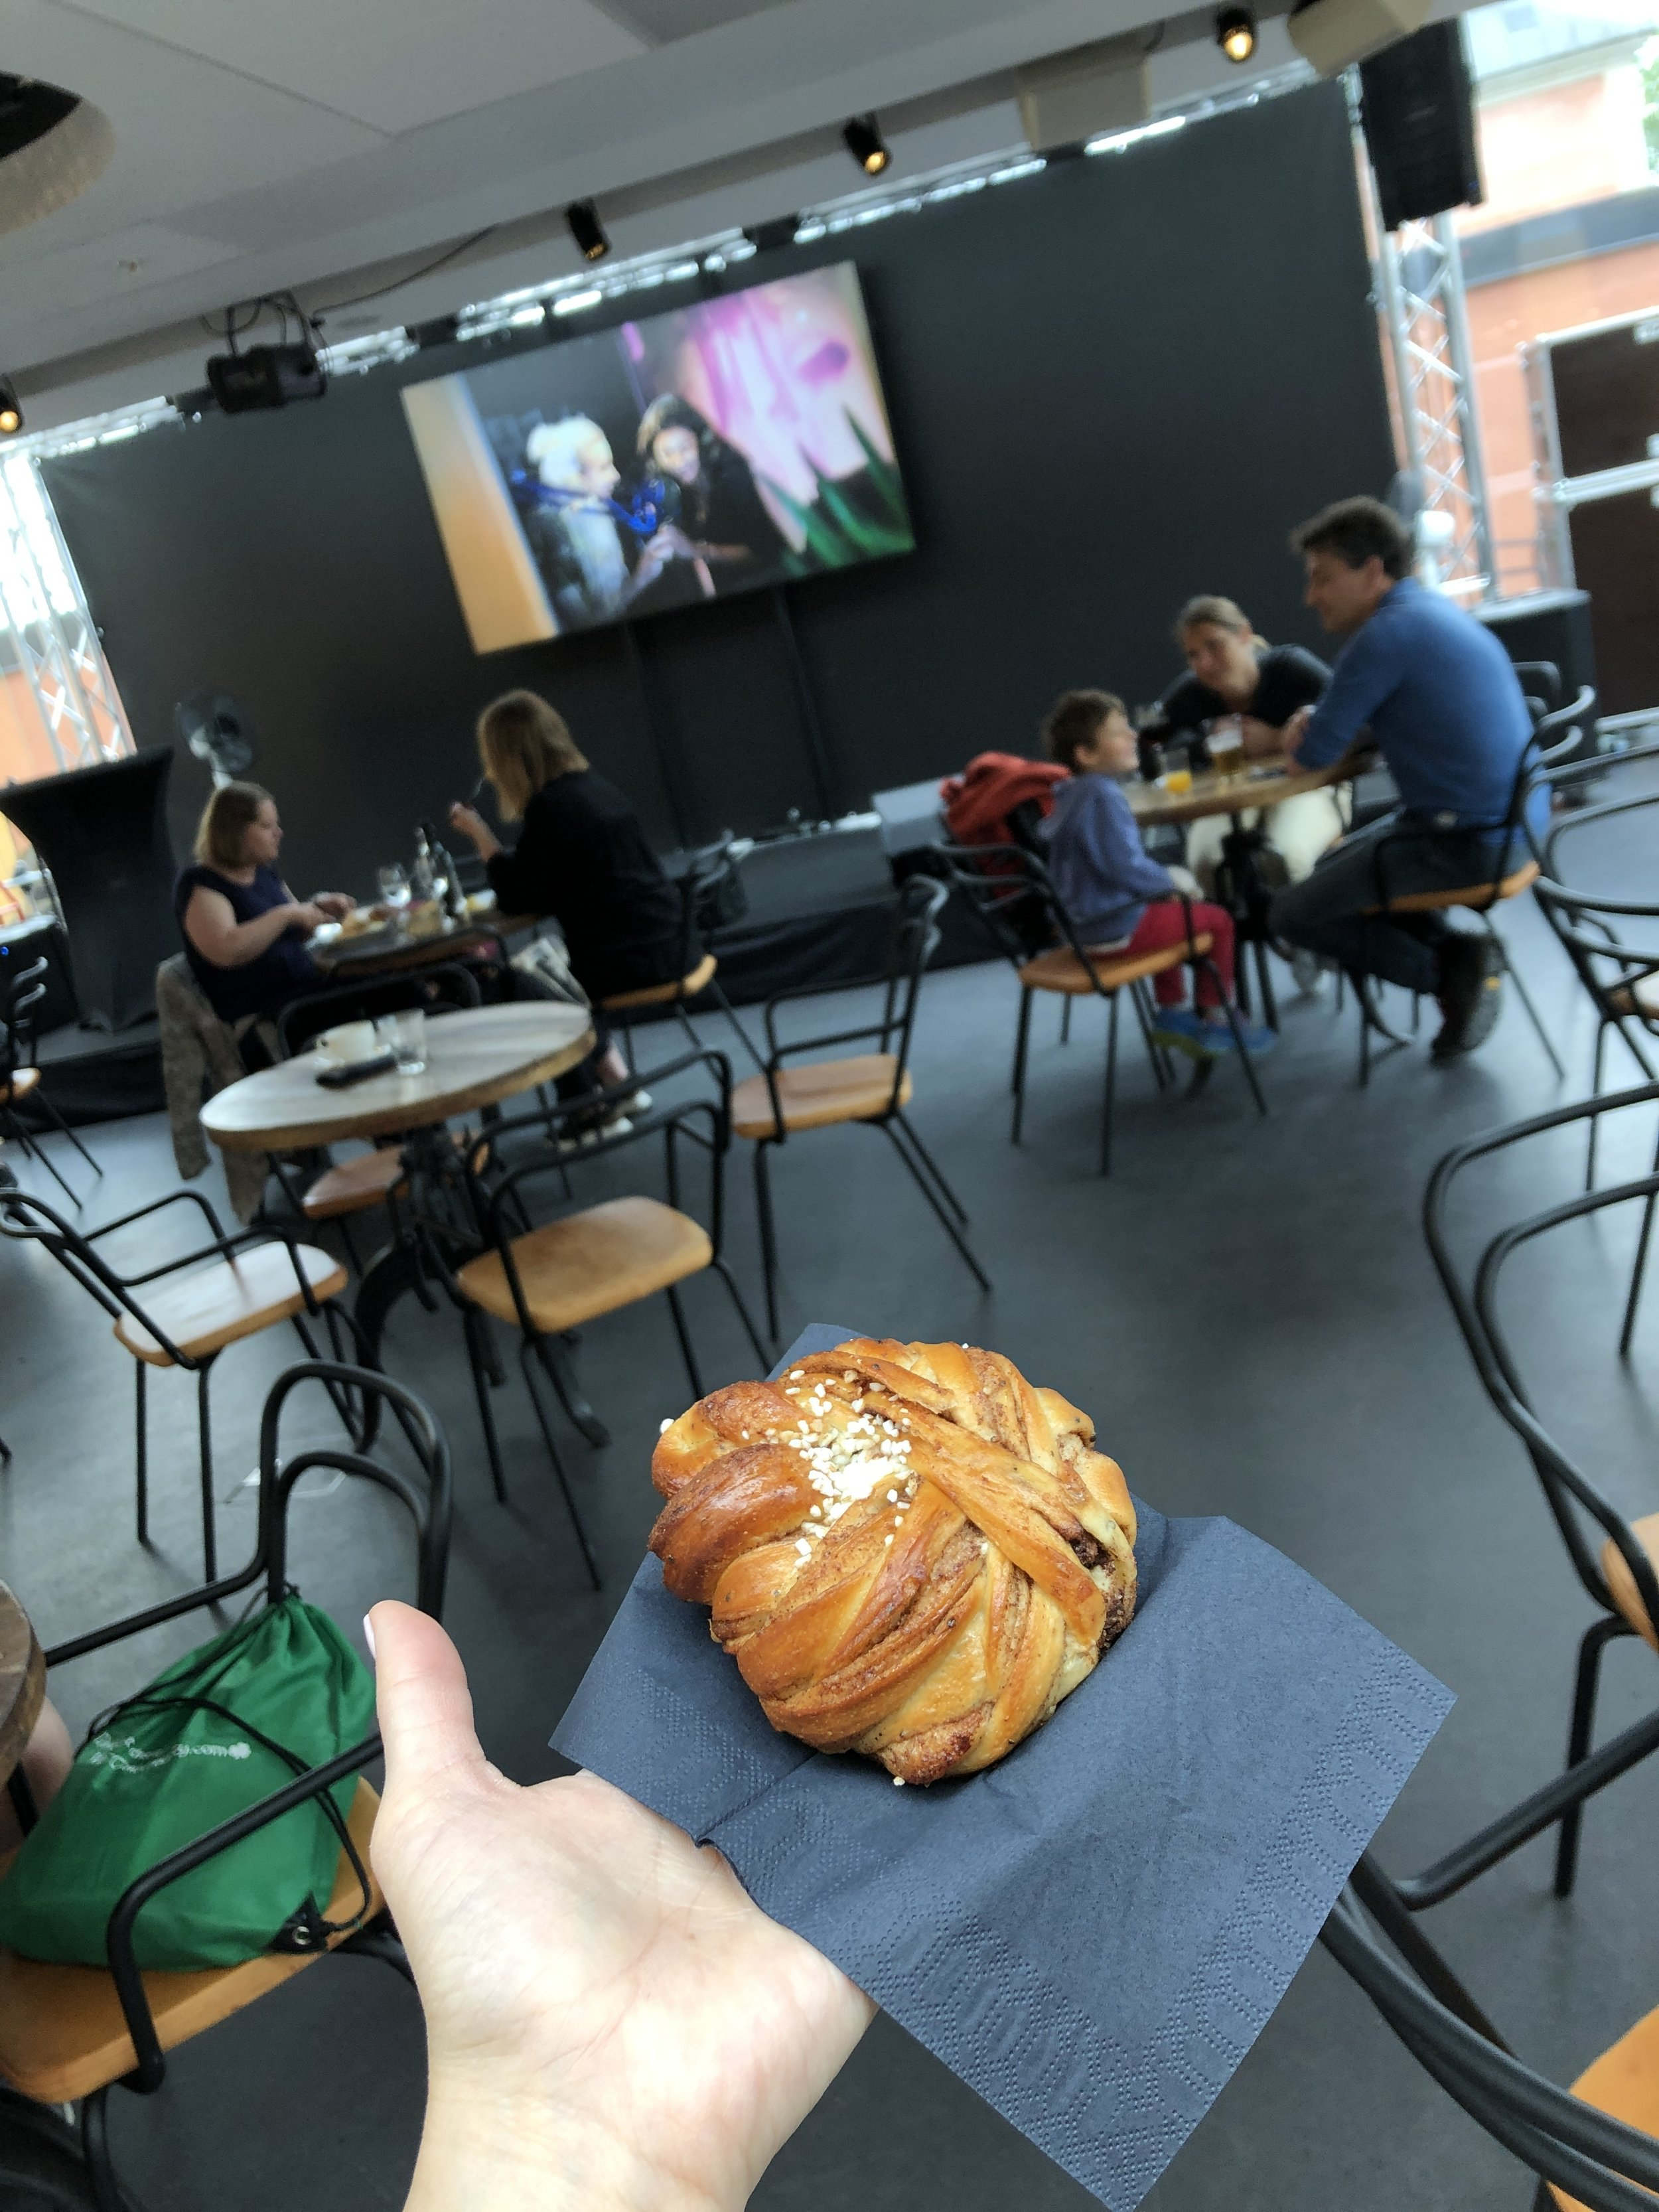 Grabbing a spot of fika (Swedish culturally-enshrined coffee/pastry time) in the Pop Hotel of the ABBA Museum. Swedish pastries are only ok.